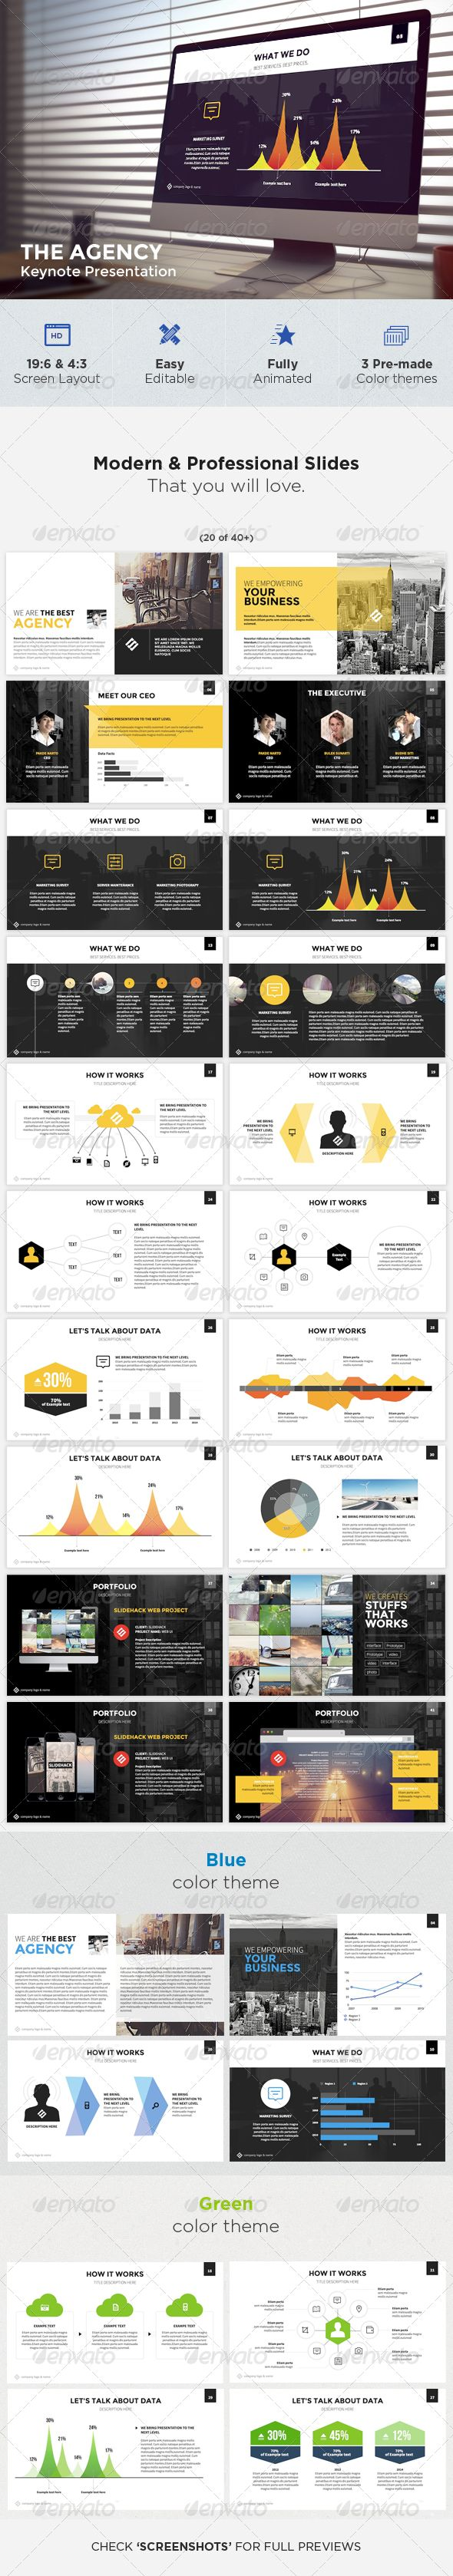 33 Best Duke Exchange Images On Pinterest Brand Identity And 11 Multiple Jigsaw Diagram Powerpoint Templates Graphics Slides 0712 The Agency Modern Keynote Template Ppt Designslide Designgraphic